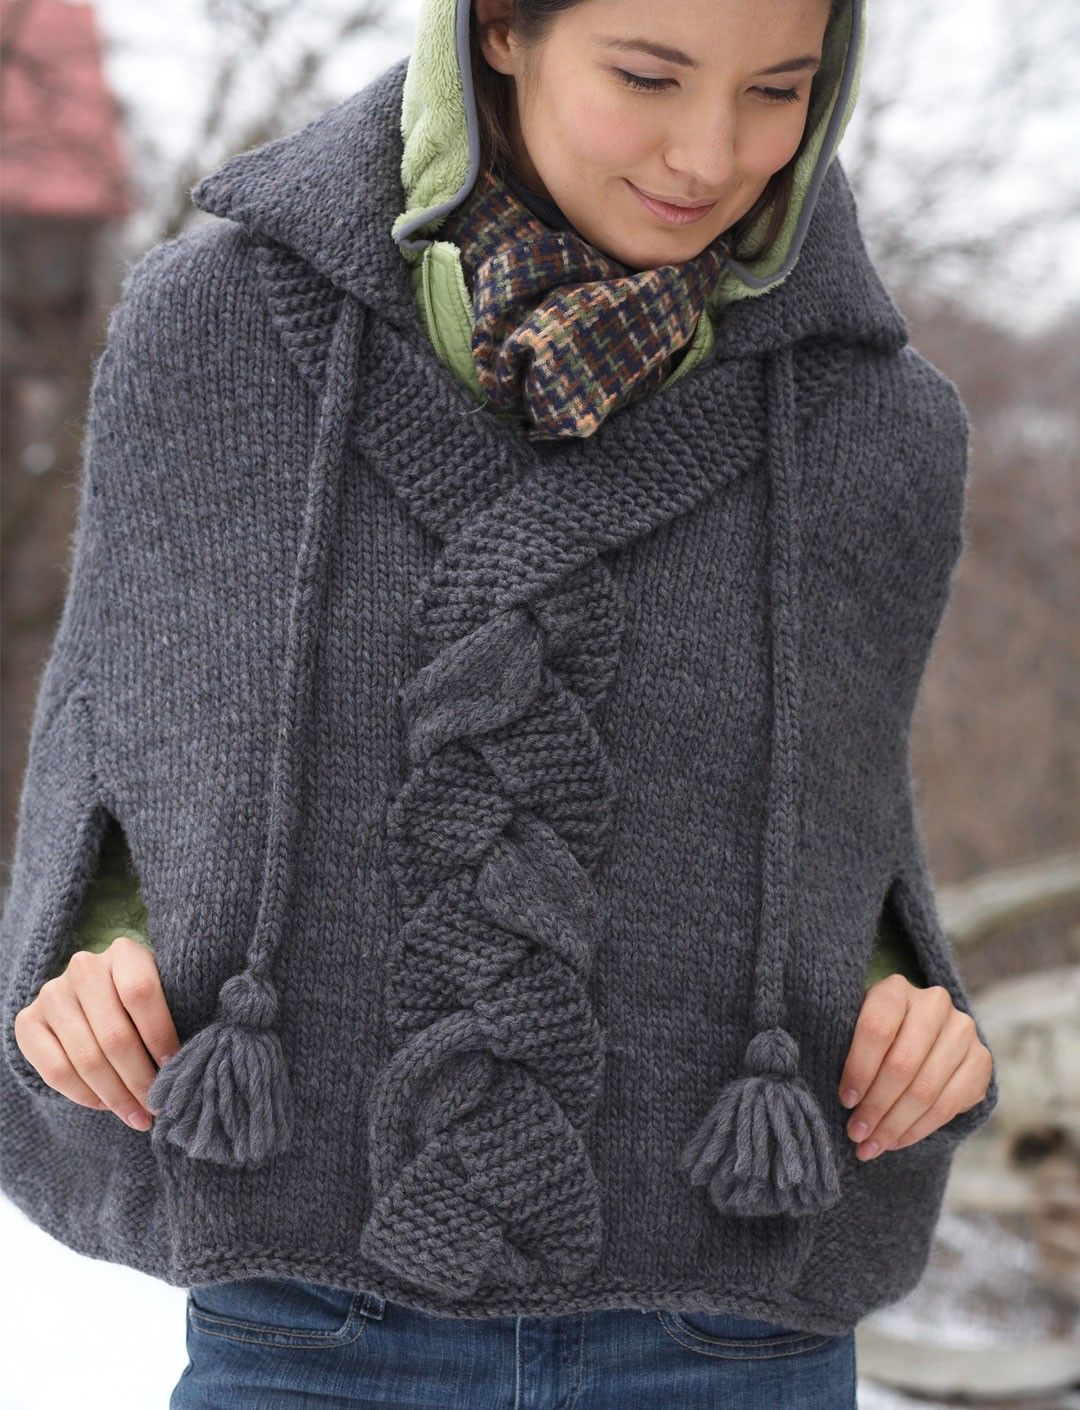 Braid Detail Cape - Patterns | Yarnspirations - I love this design. Will add it to my list to design a crochet one.